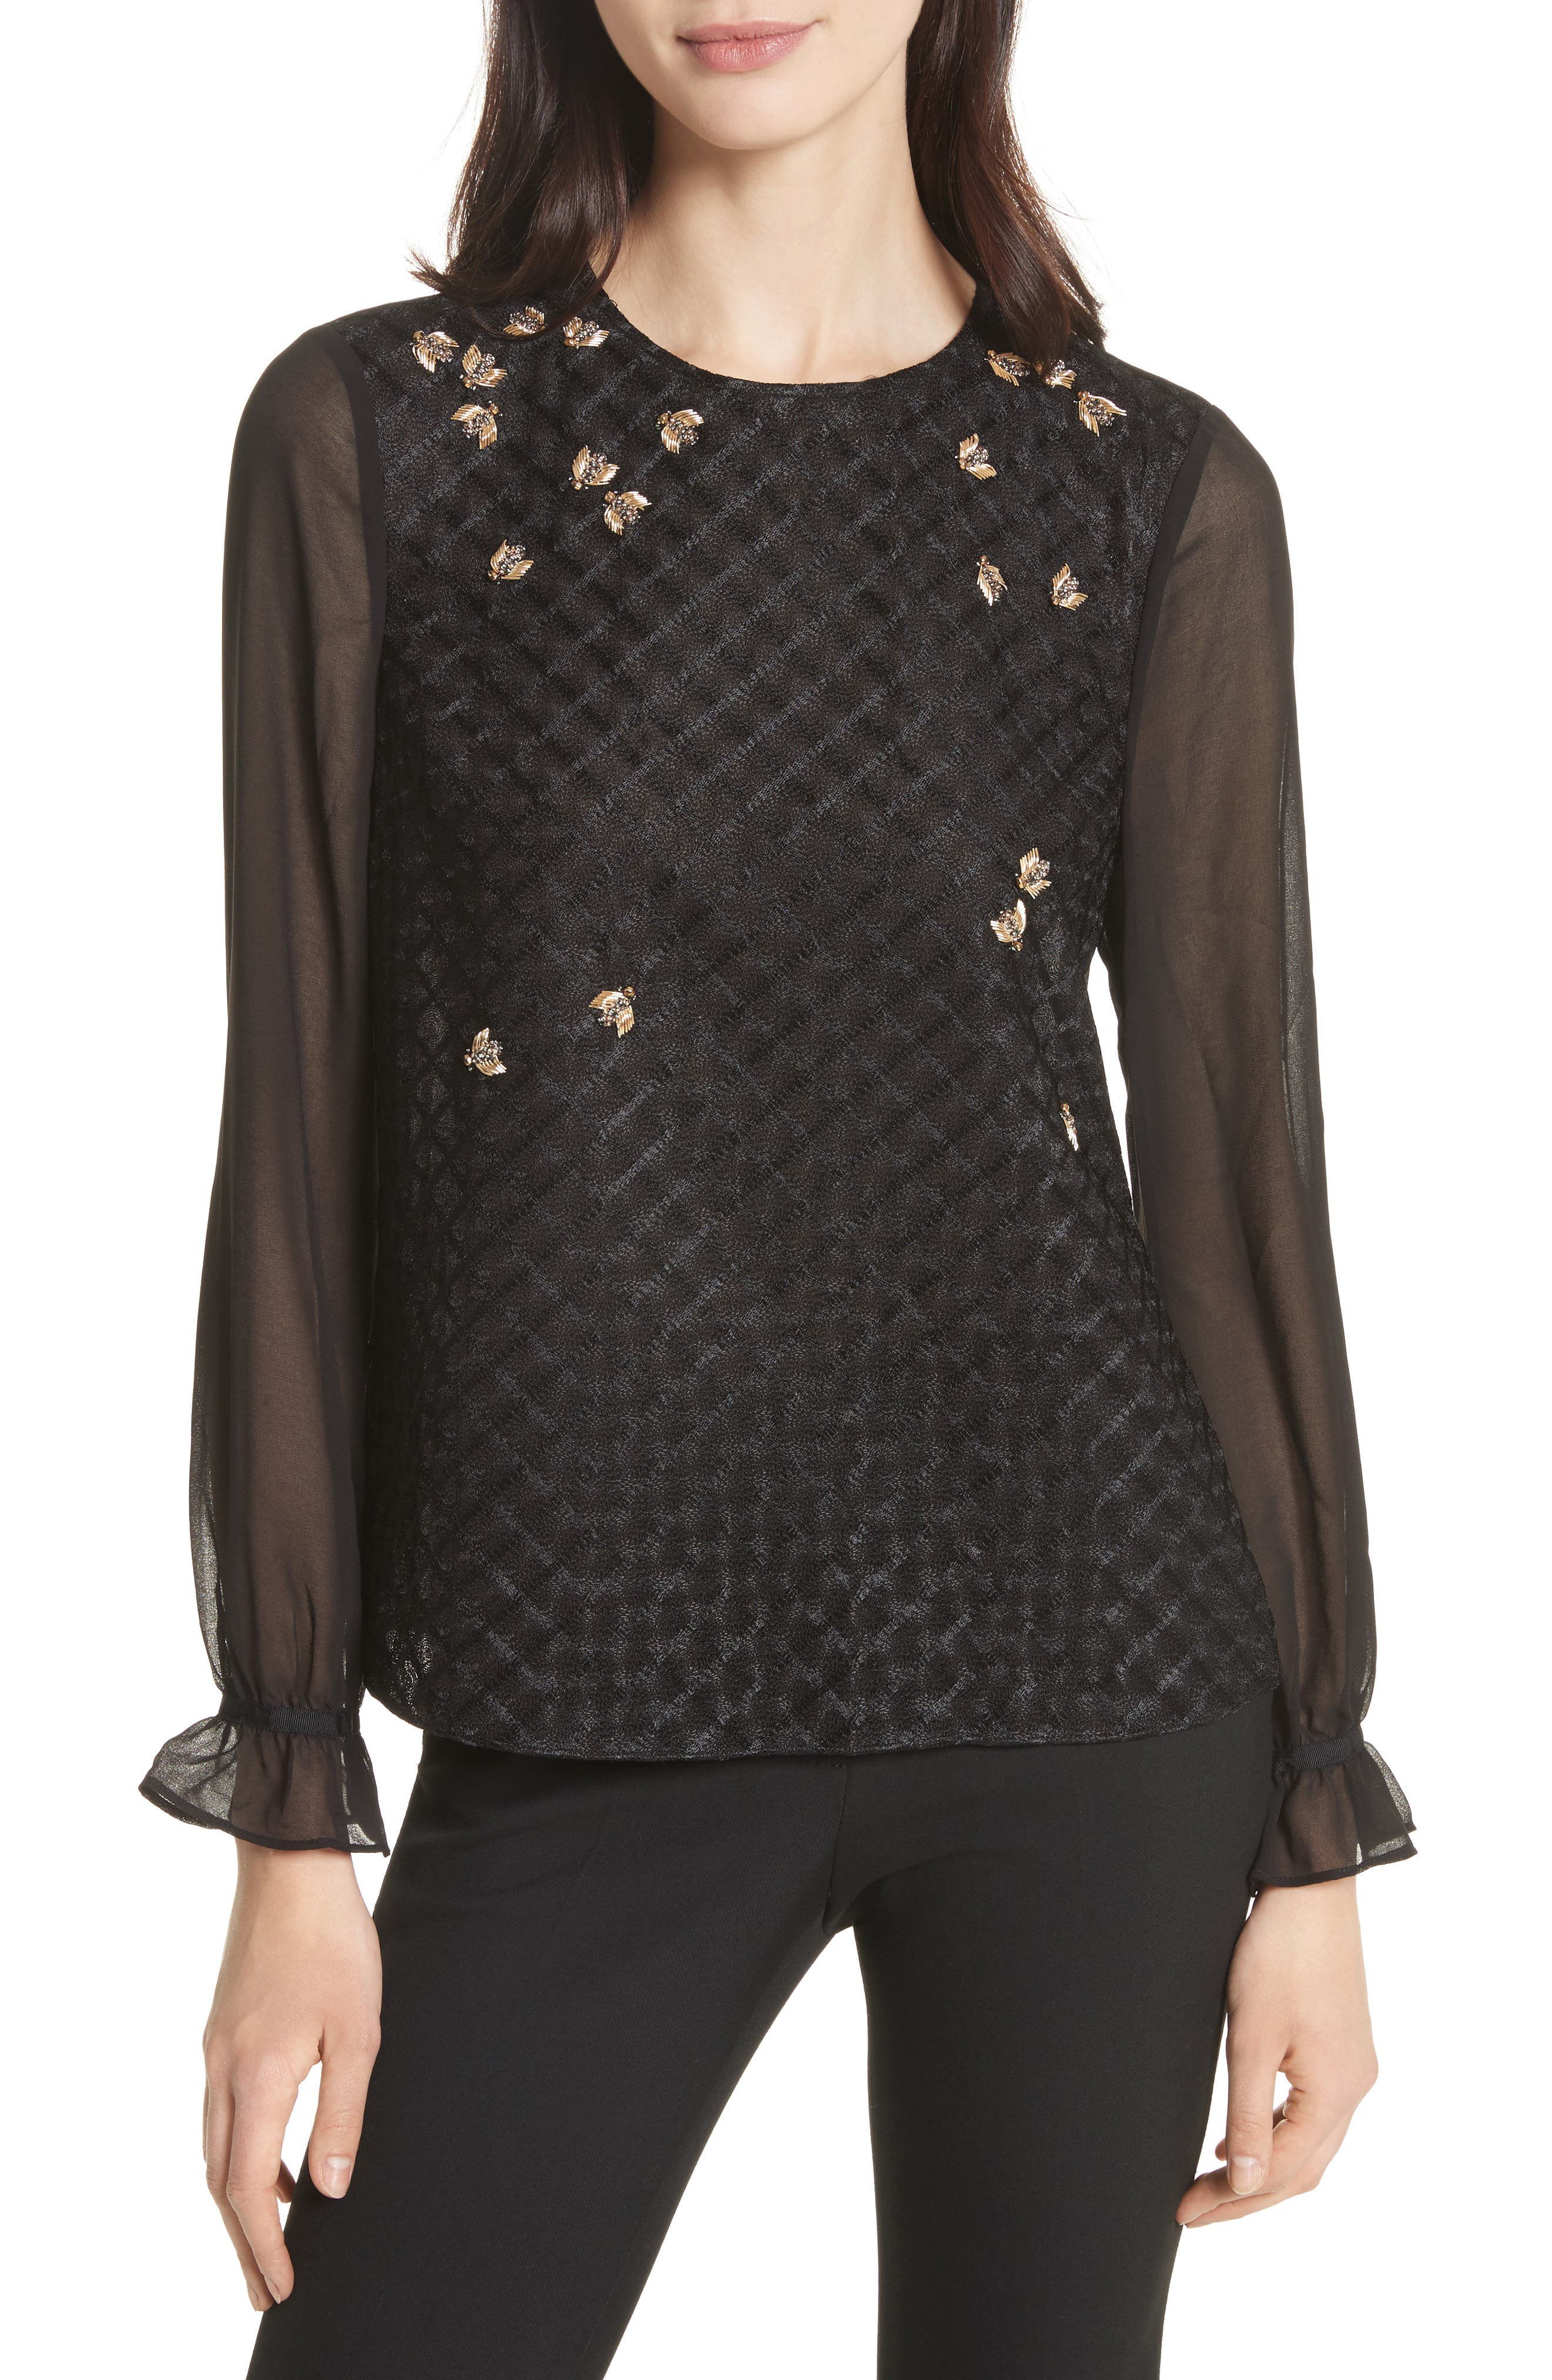 Queen Bee Embellished Top,                             Main thumbnail 1, color,                             001